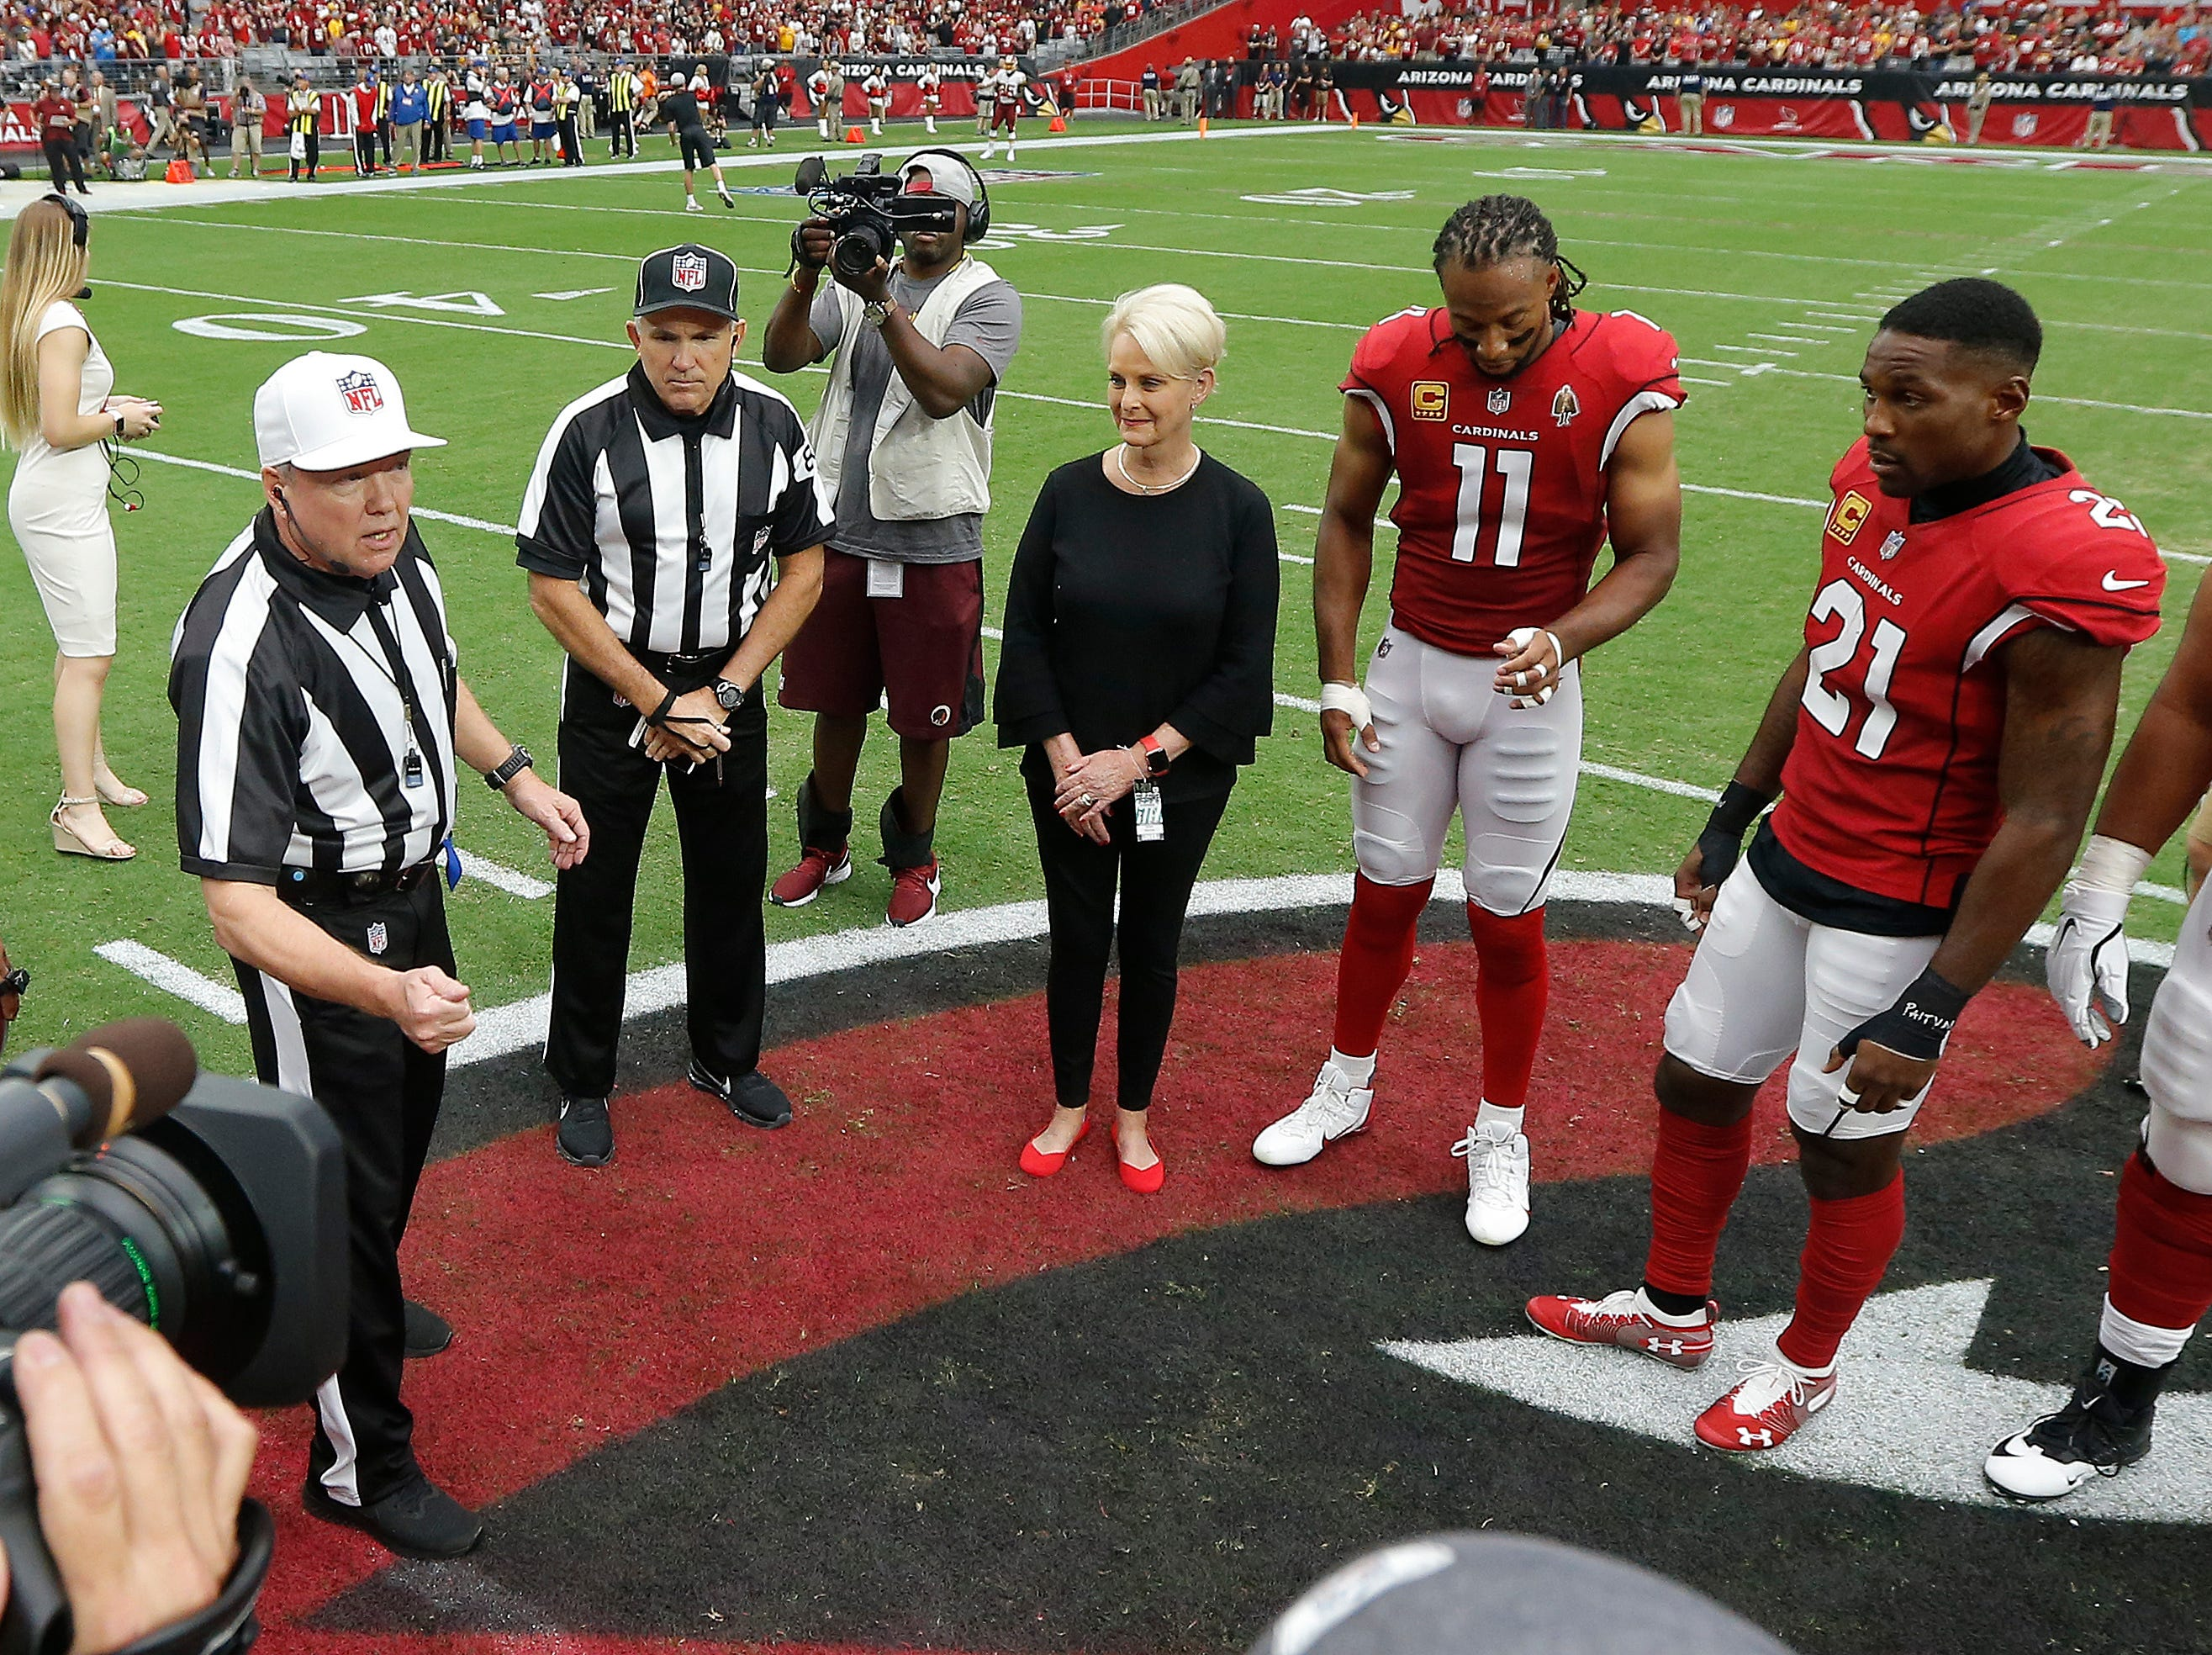 Cindy McCain, wife of the late U.S. Sen. John McCain, R-Ariz., stands with Arizona Cardinals players' Larry Fitzgerald (11) and Patrick Peterson (21) as an honorary team captain during the coin toss prior to an NFL football game against the Washington Redskins, Sept. 9, 2018, in Glendale, Ariz.